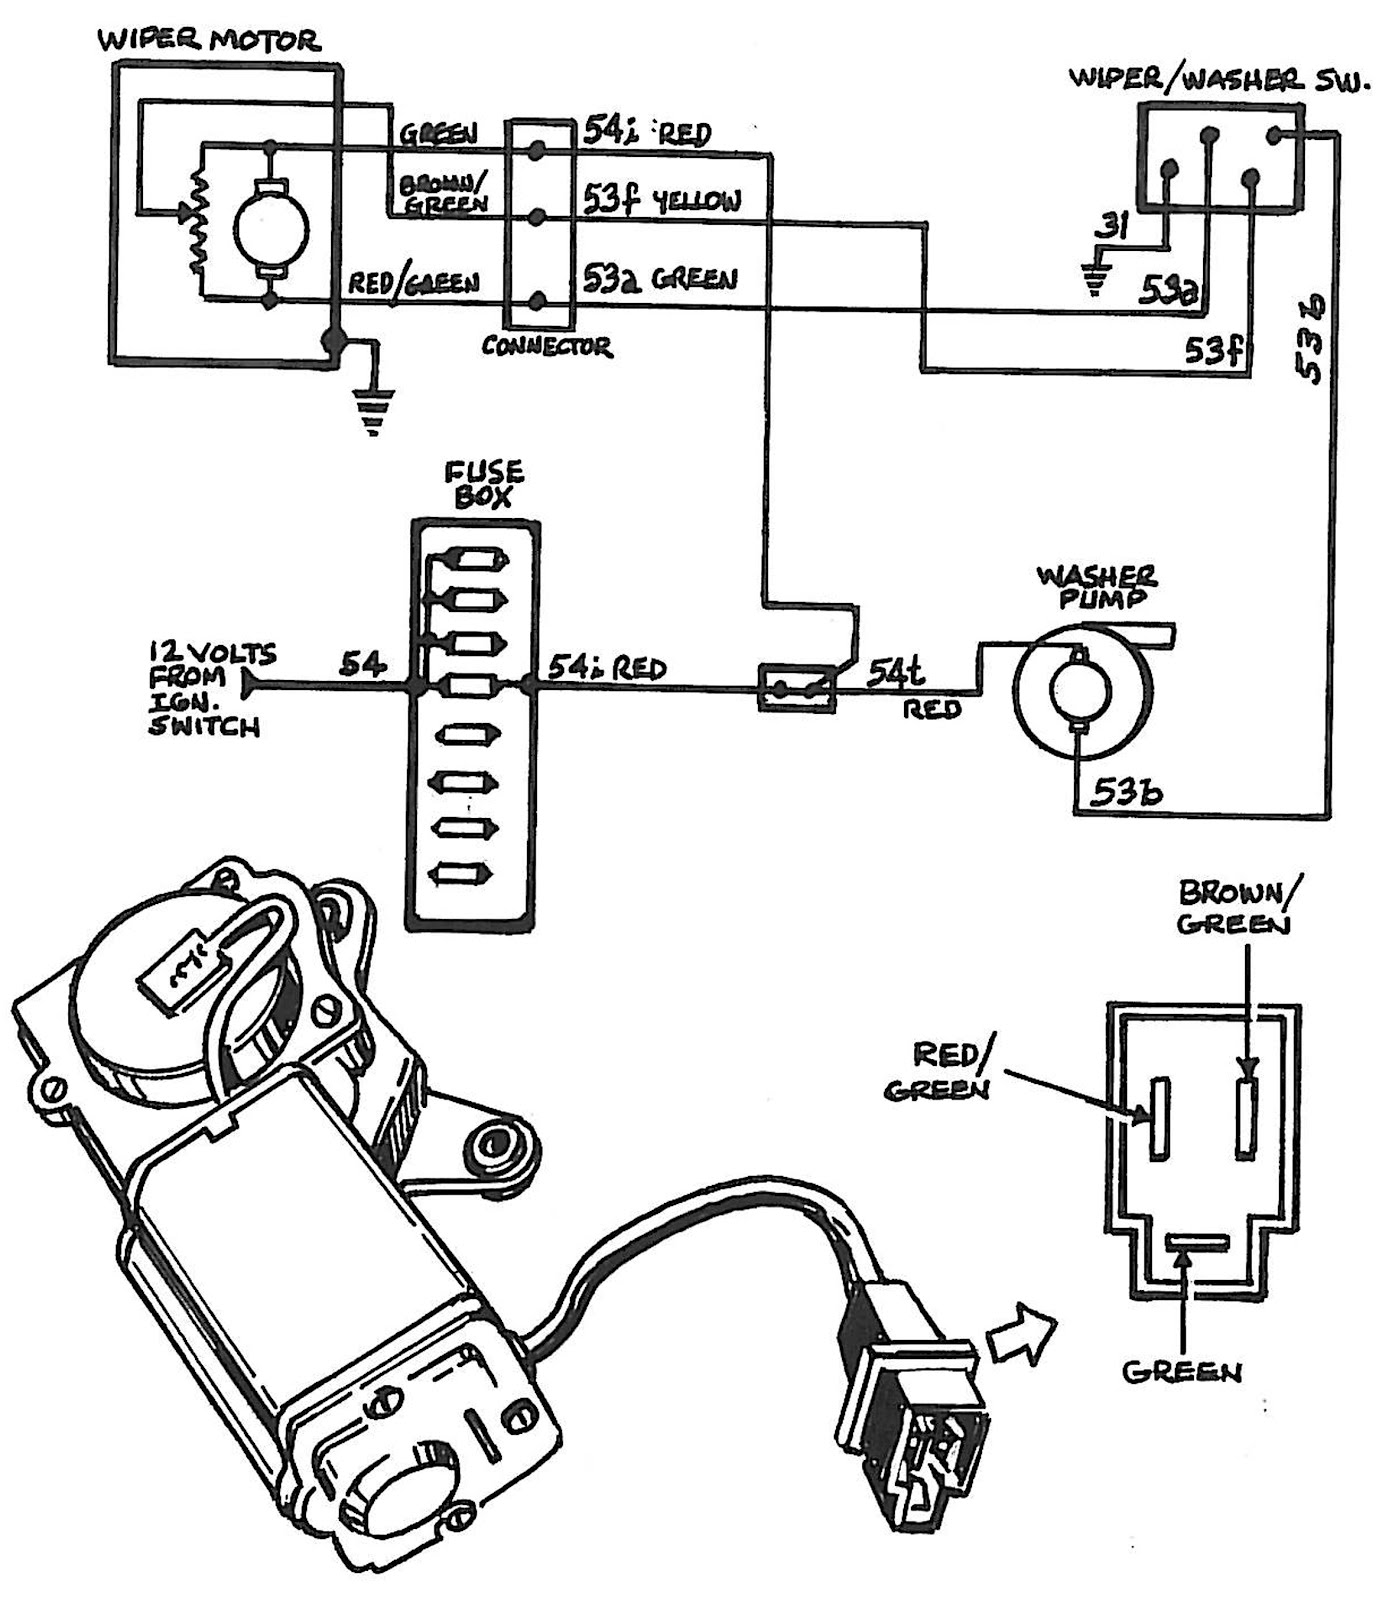 Camaro Wiper Motor Wiring Diagram